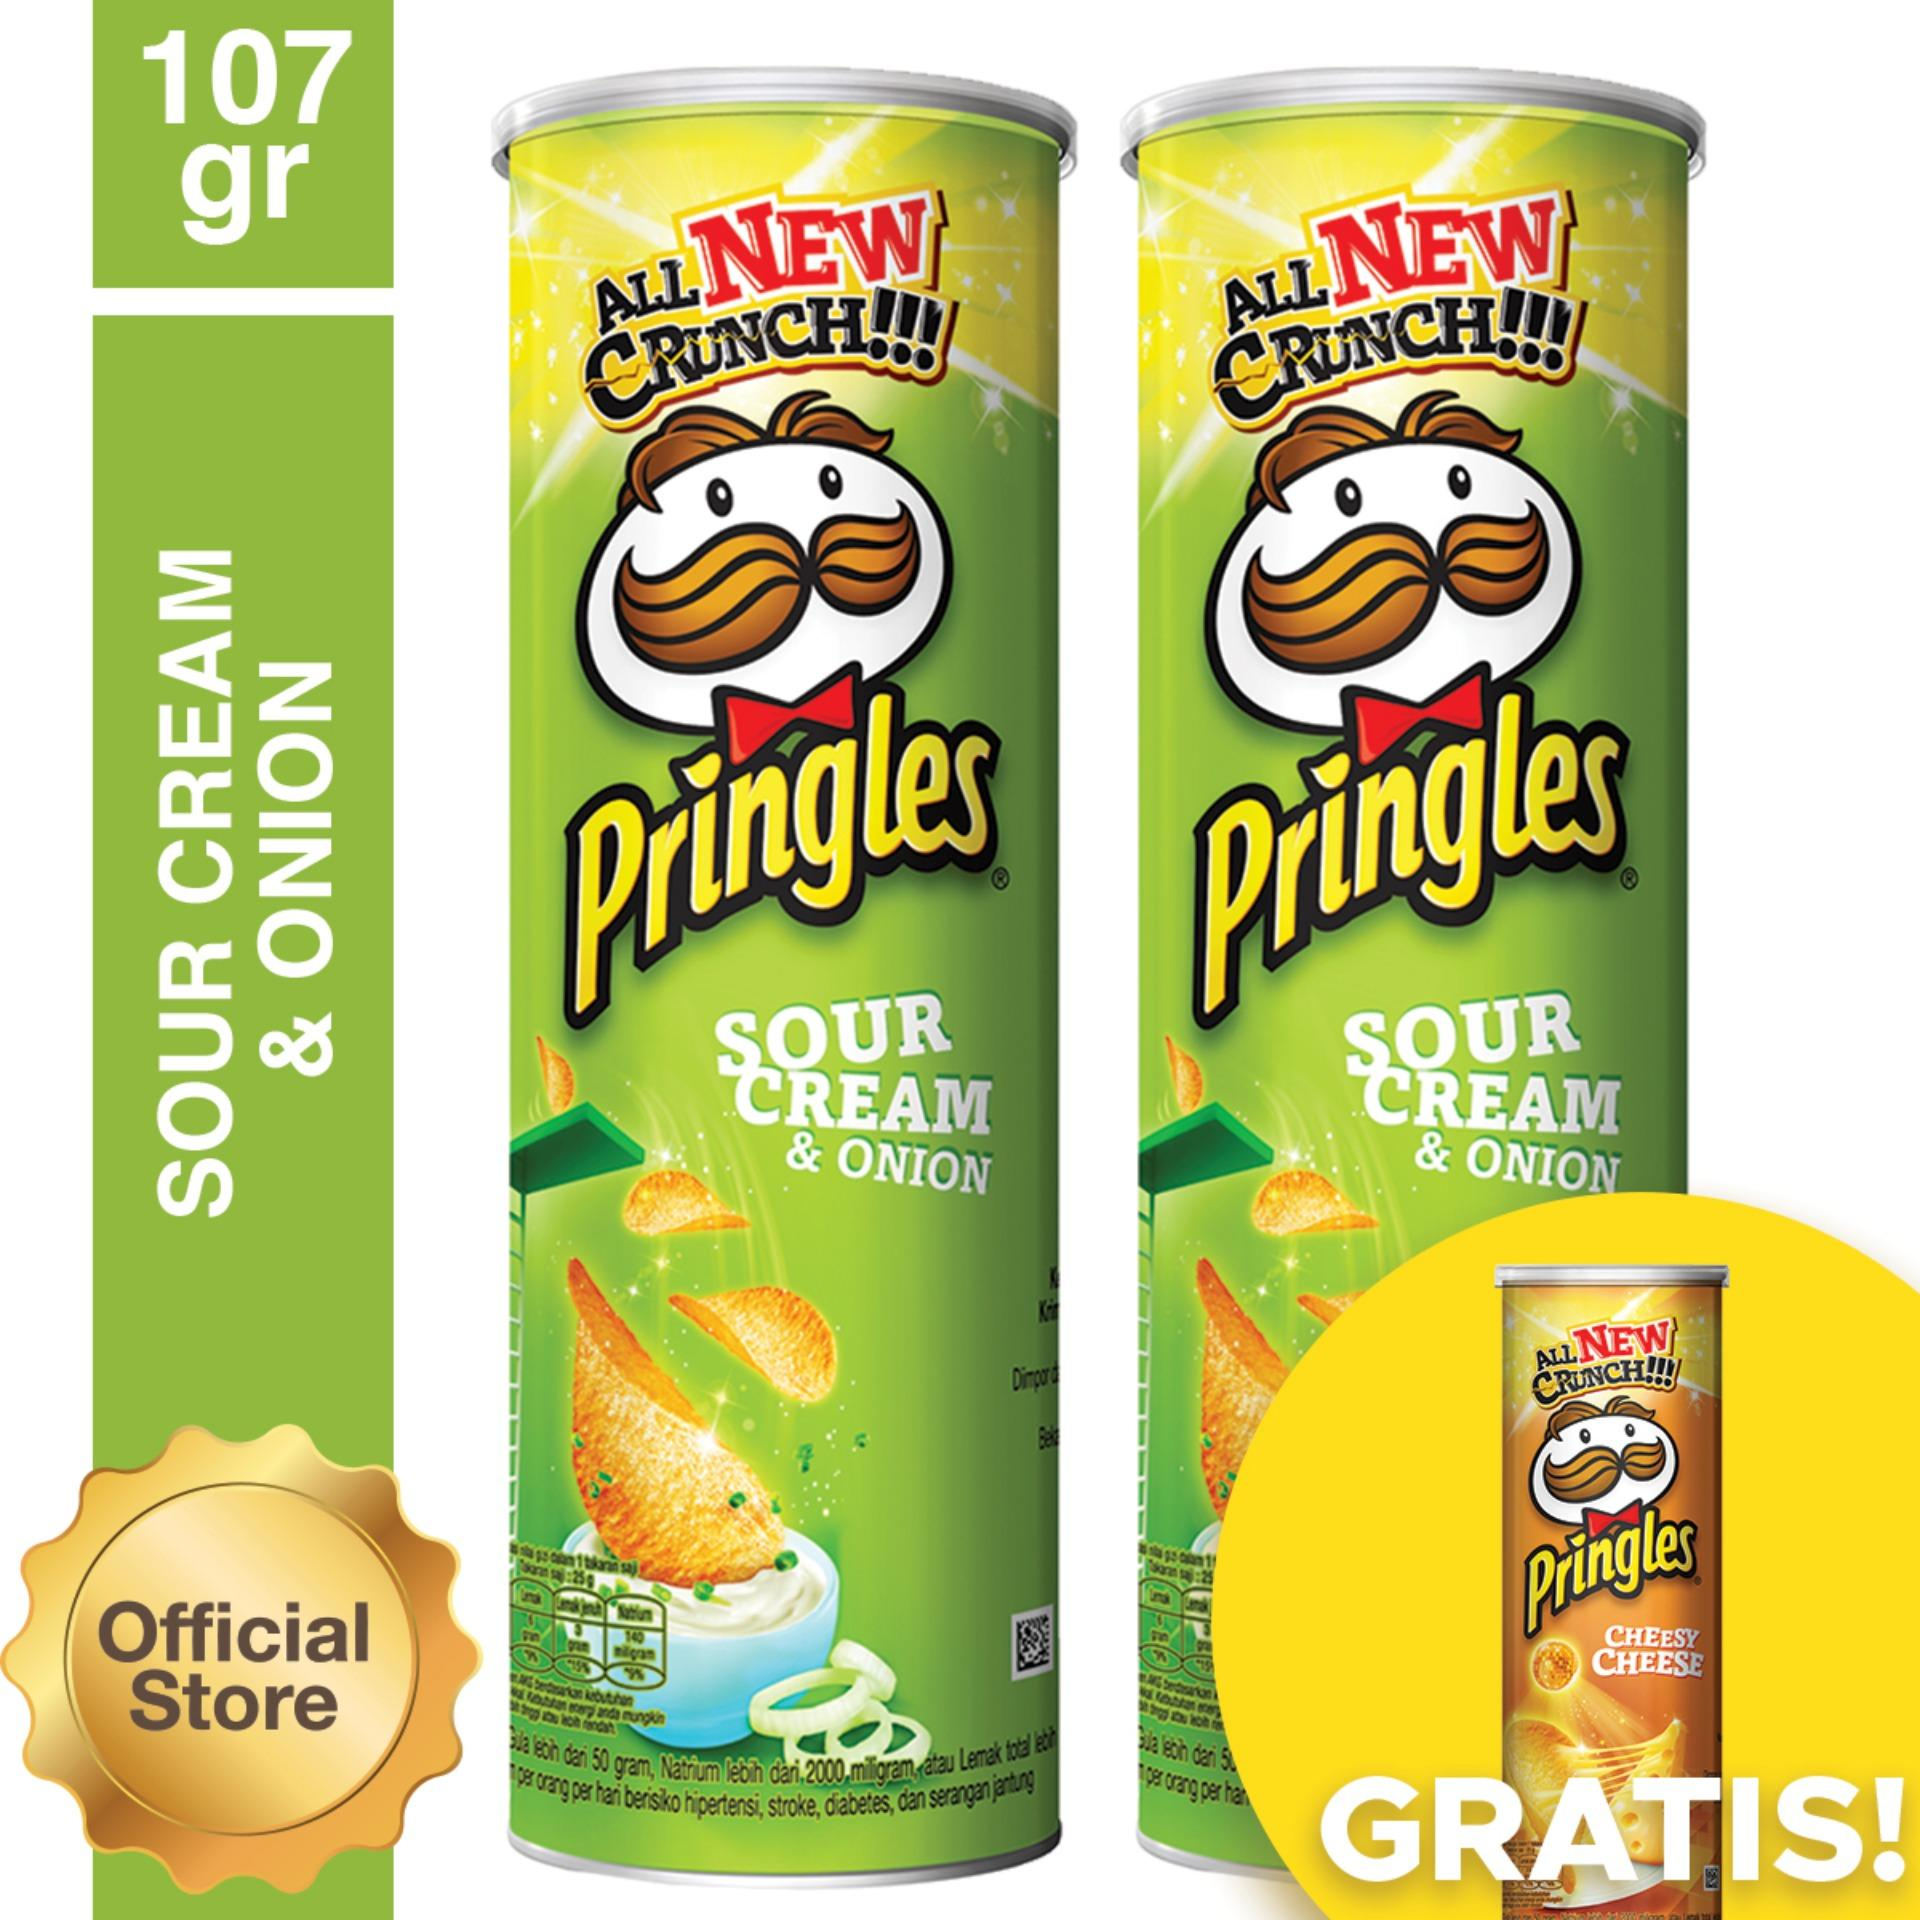 [Buy 2 Get 1] Pringles Sour Cream & Onion 107g FREE Pringles Cheesy Cheese